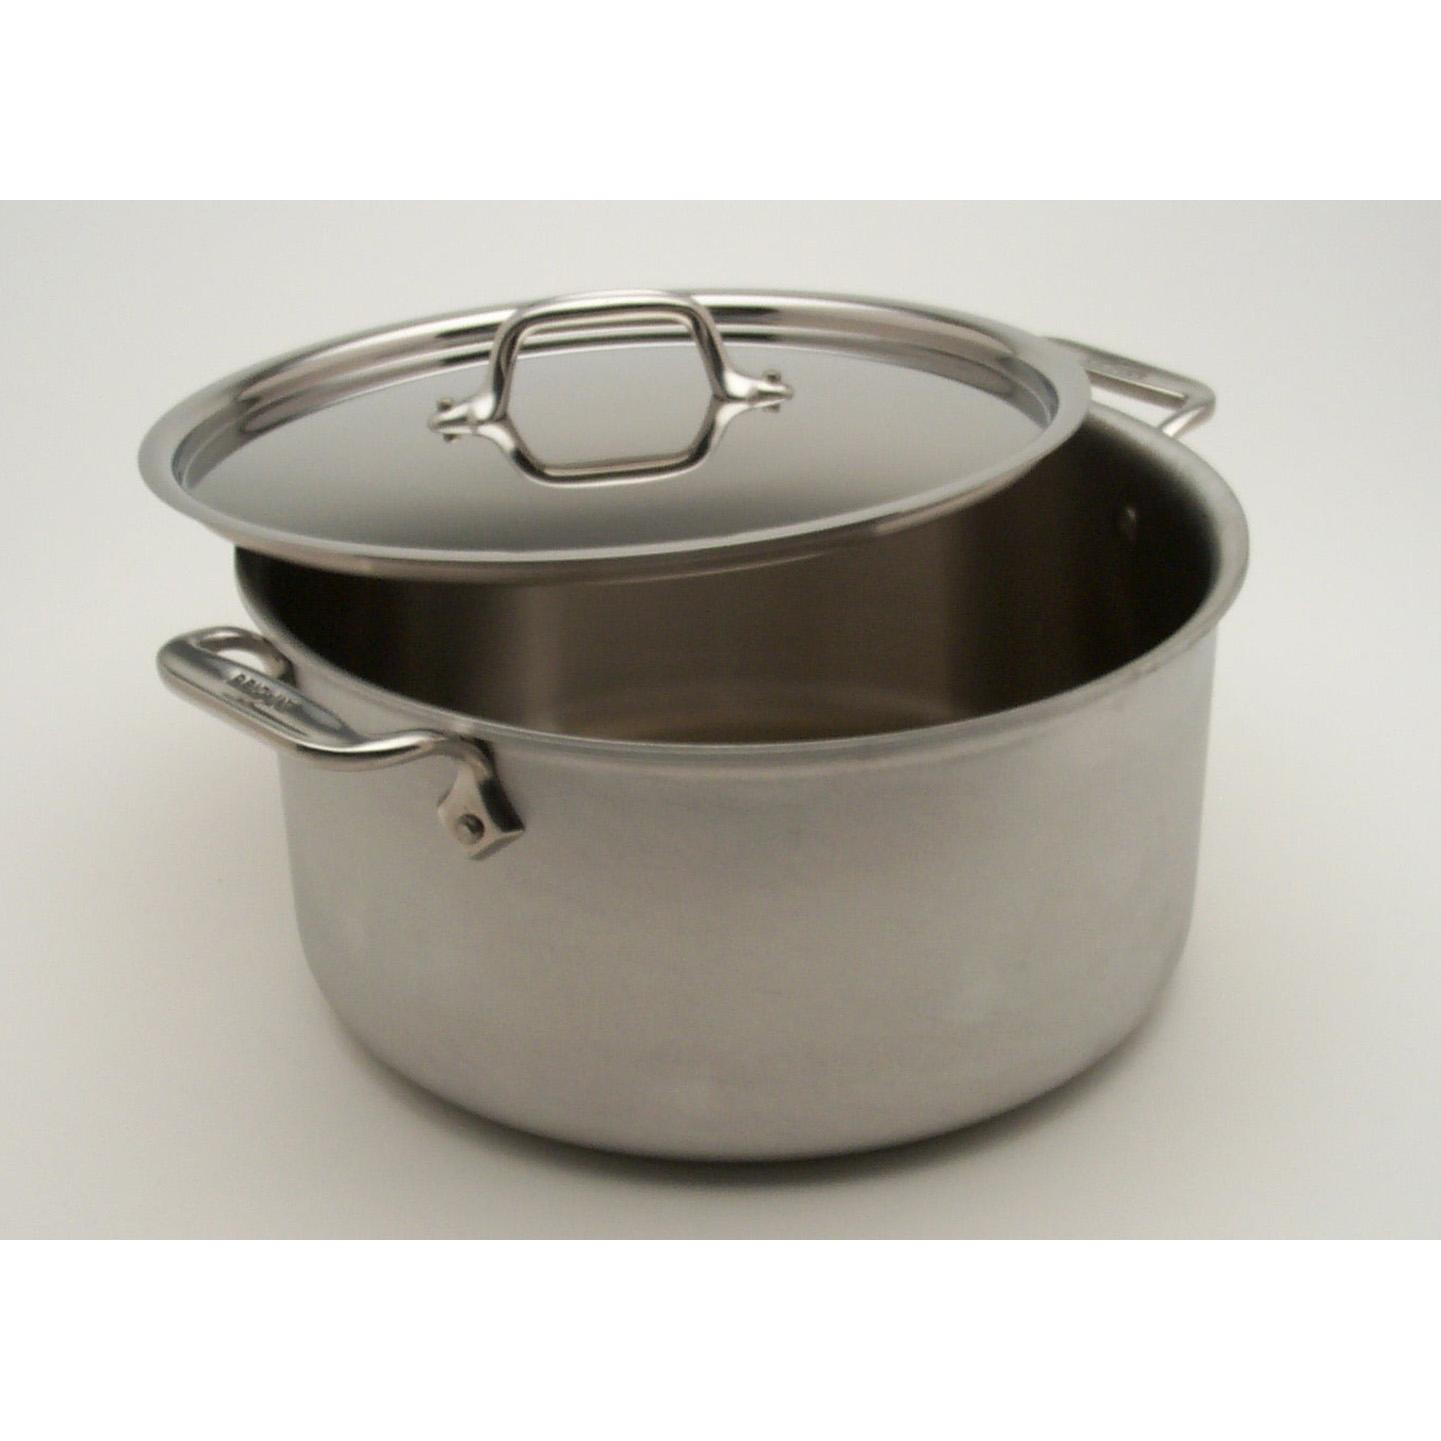 All-Clad MC2 Stainless 6-Quart Stockpot With Lid